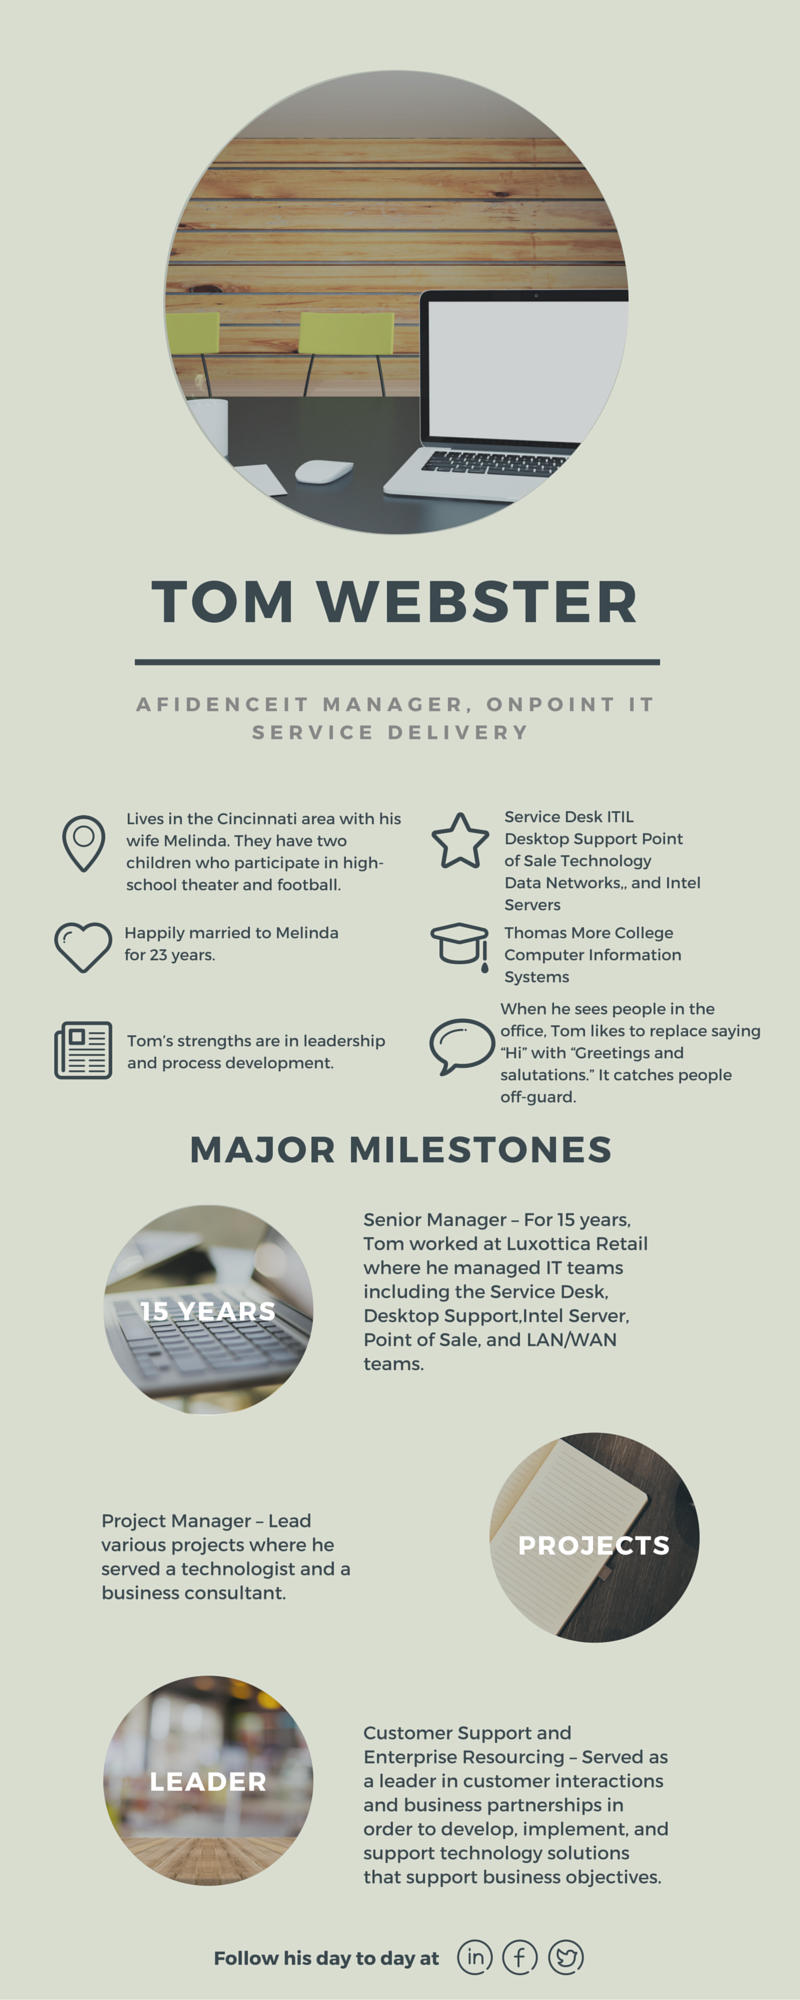 AfidenceIT is Growing! Welcome Tom Webster!